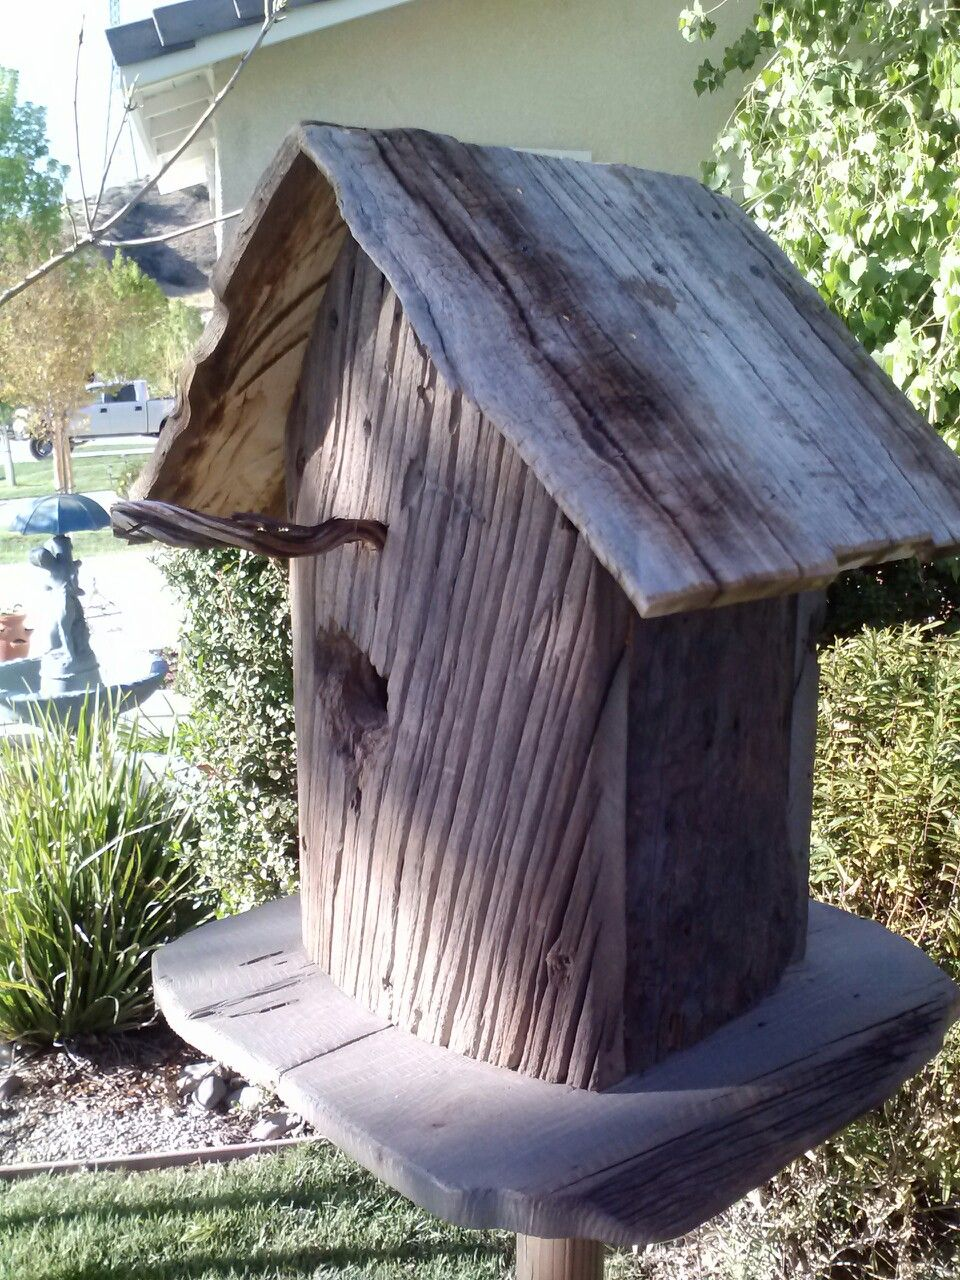 Rustic Bird House By Jeff Snow